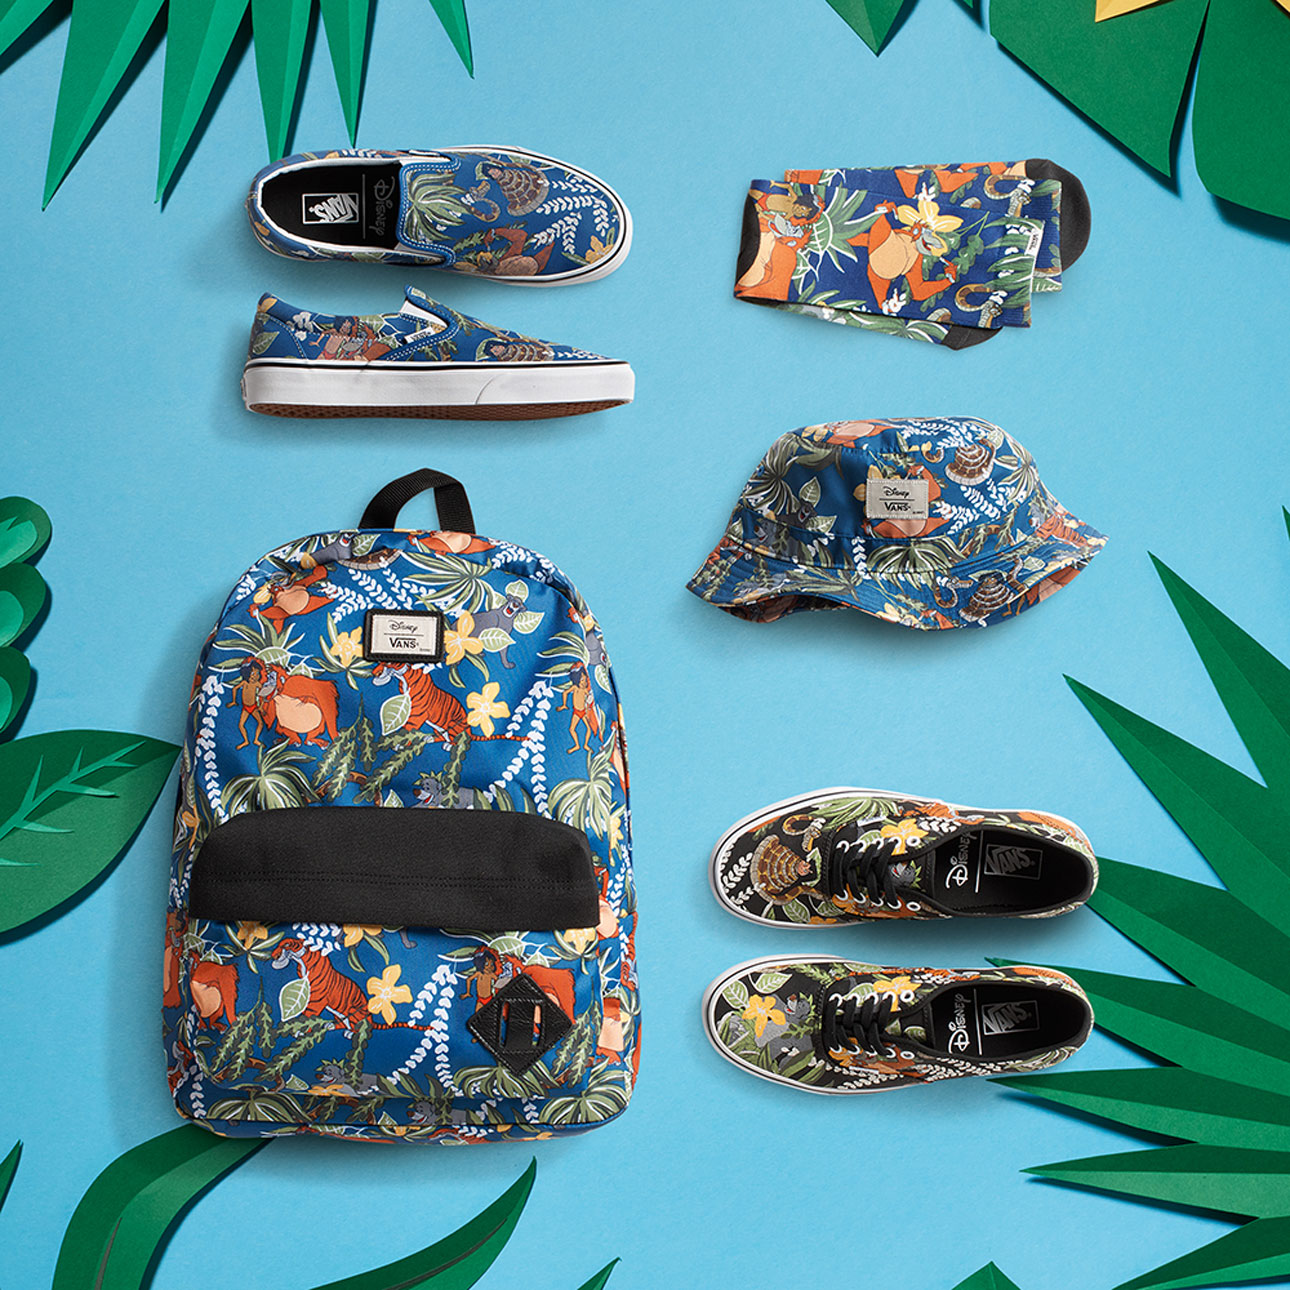 Vans Disney jungle book set